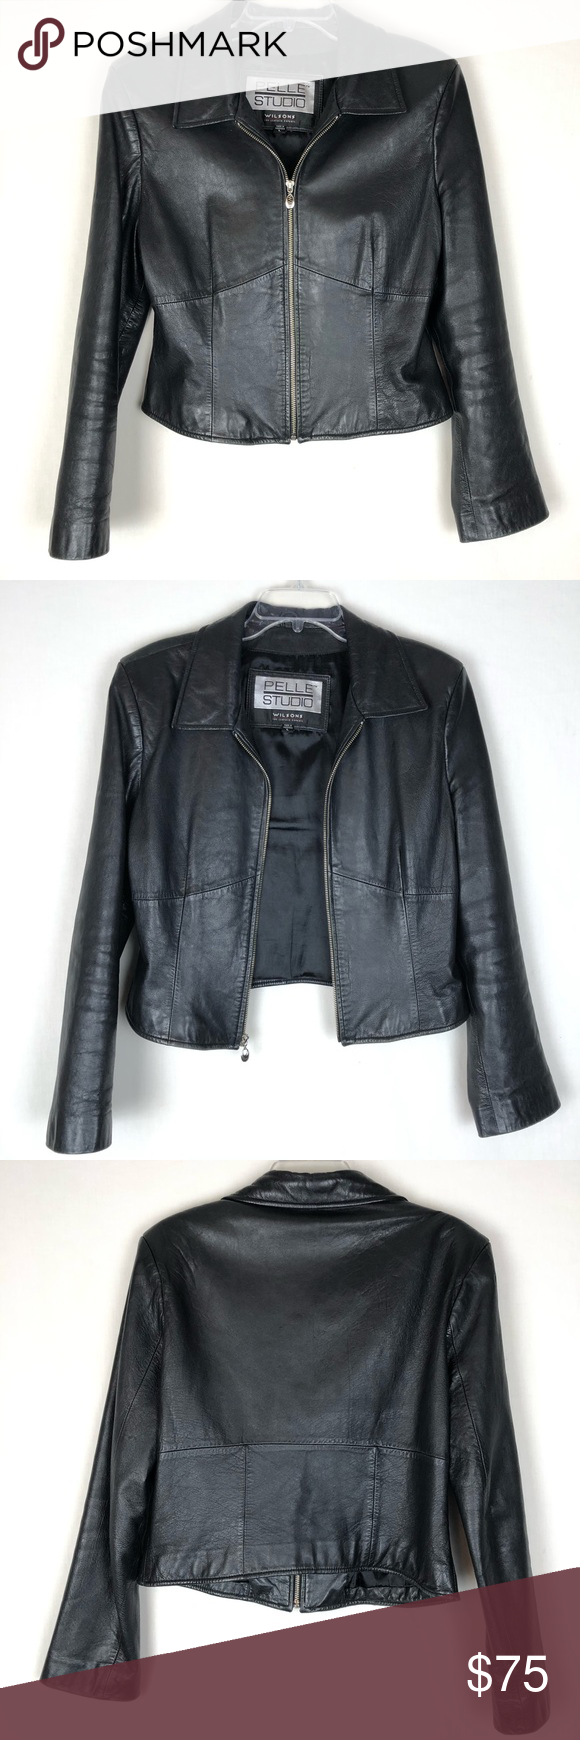 Wilsons Pelle Studio leather jacket in 2020 Leather